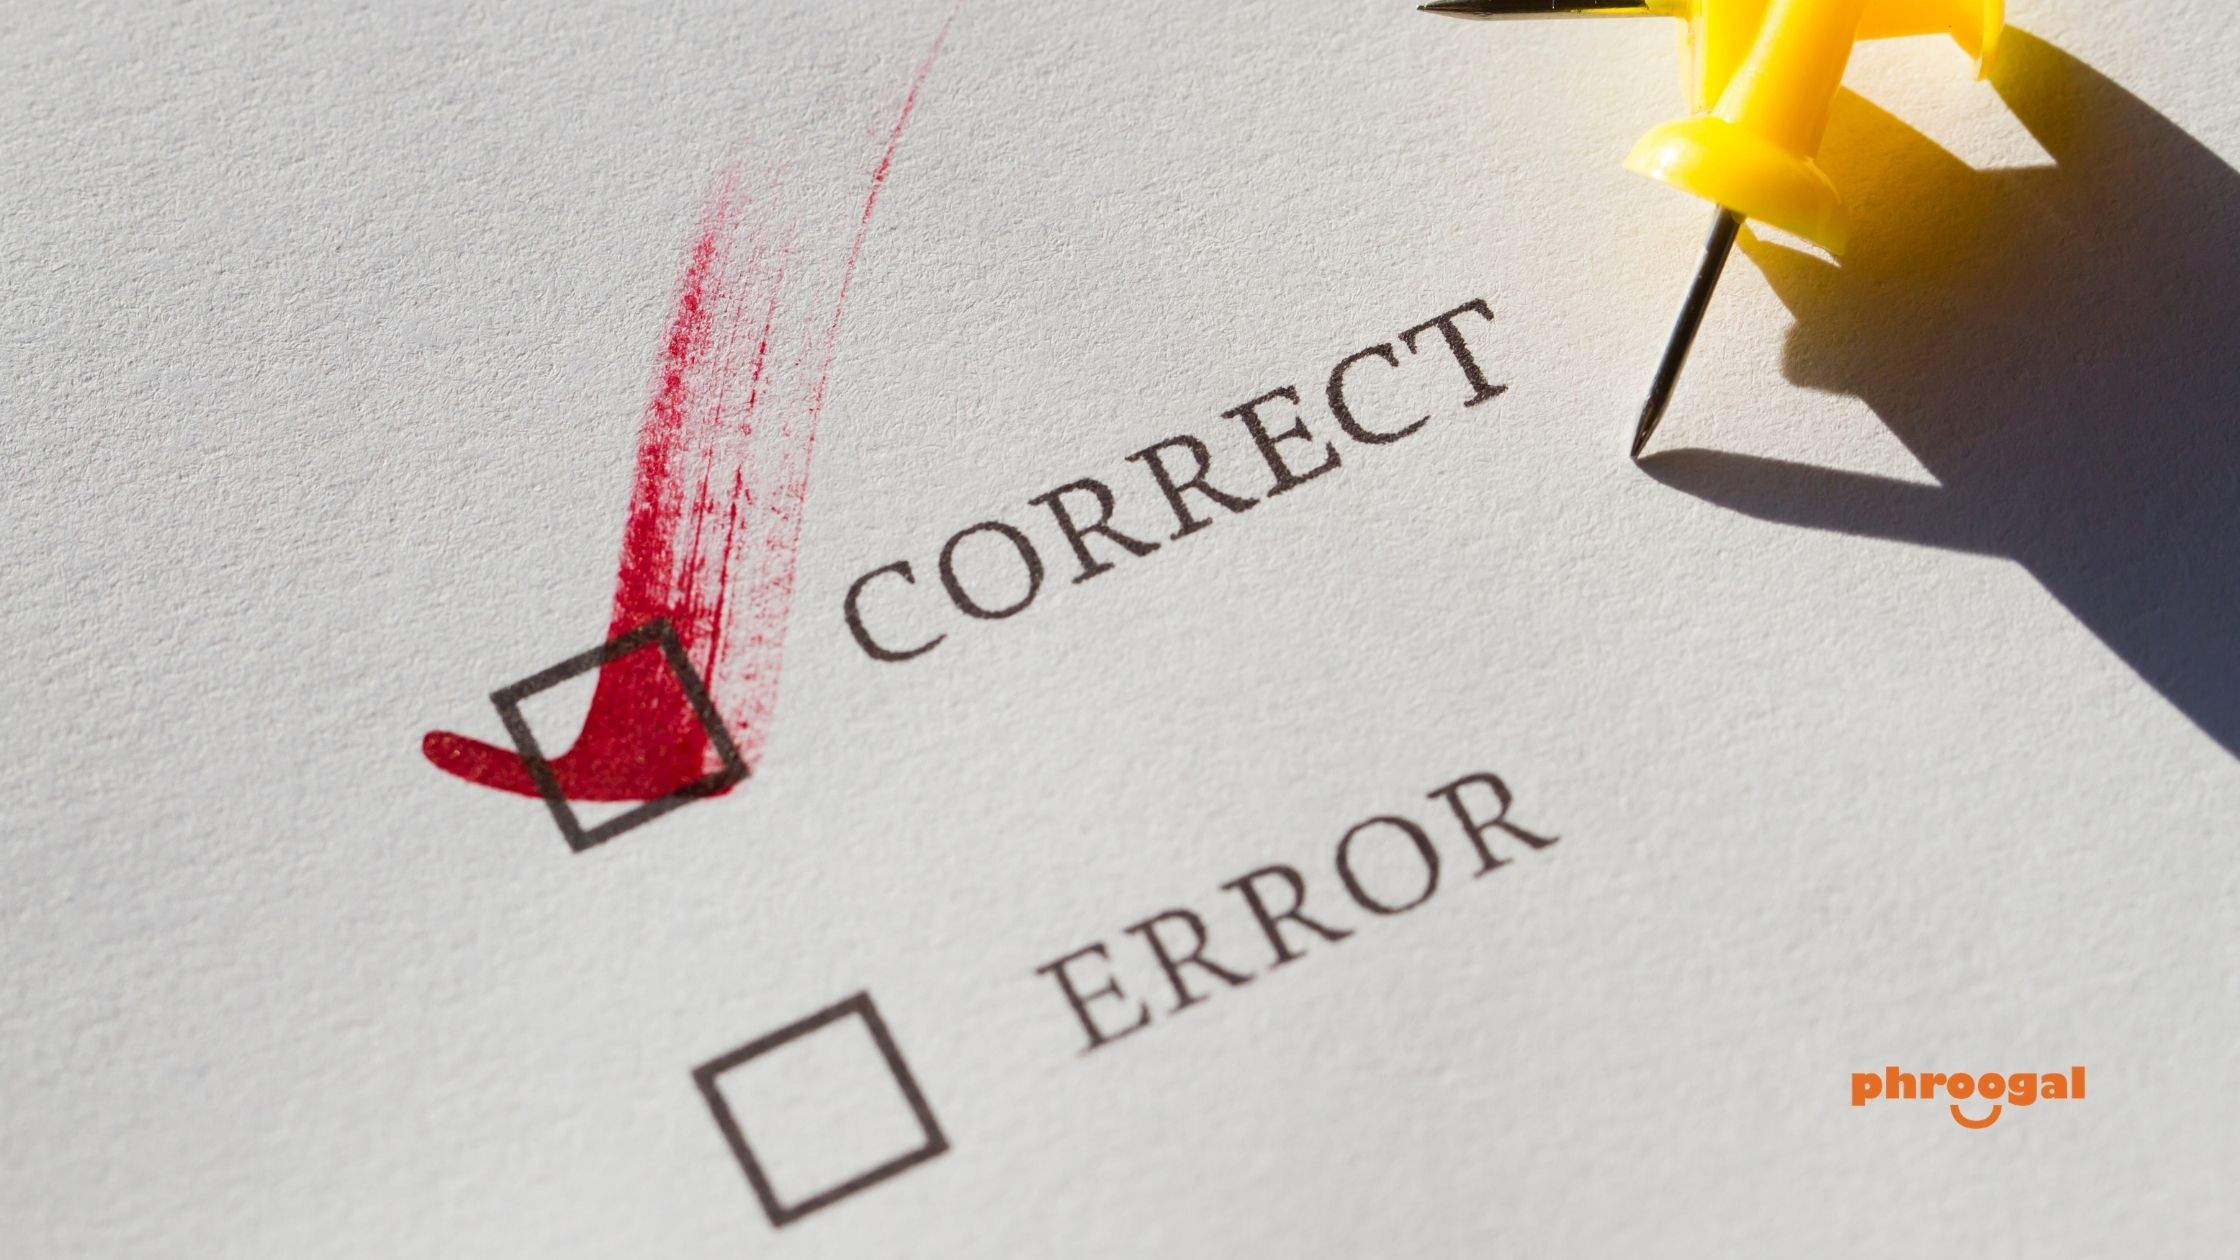 Correct Errors on Your Credit Report phroogal